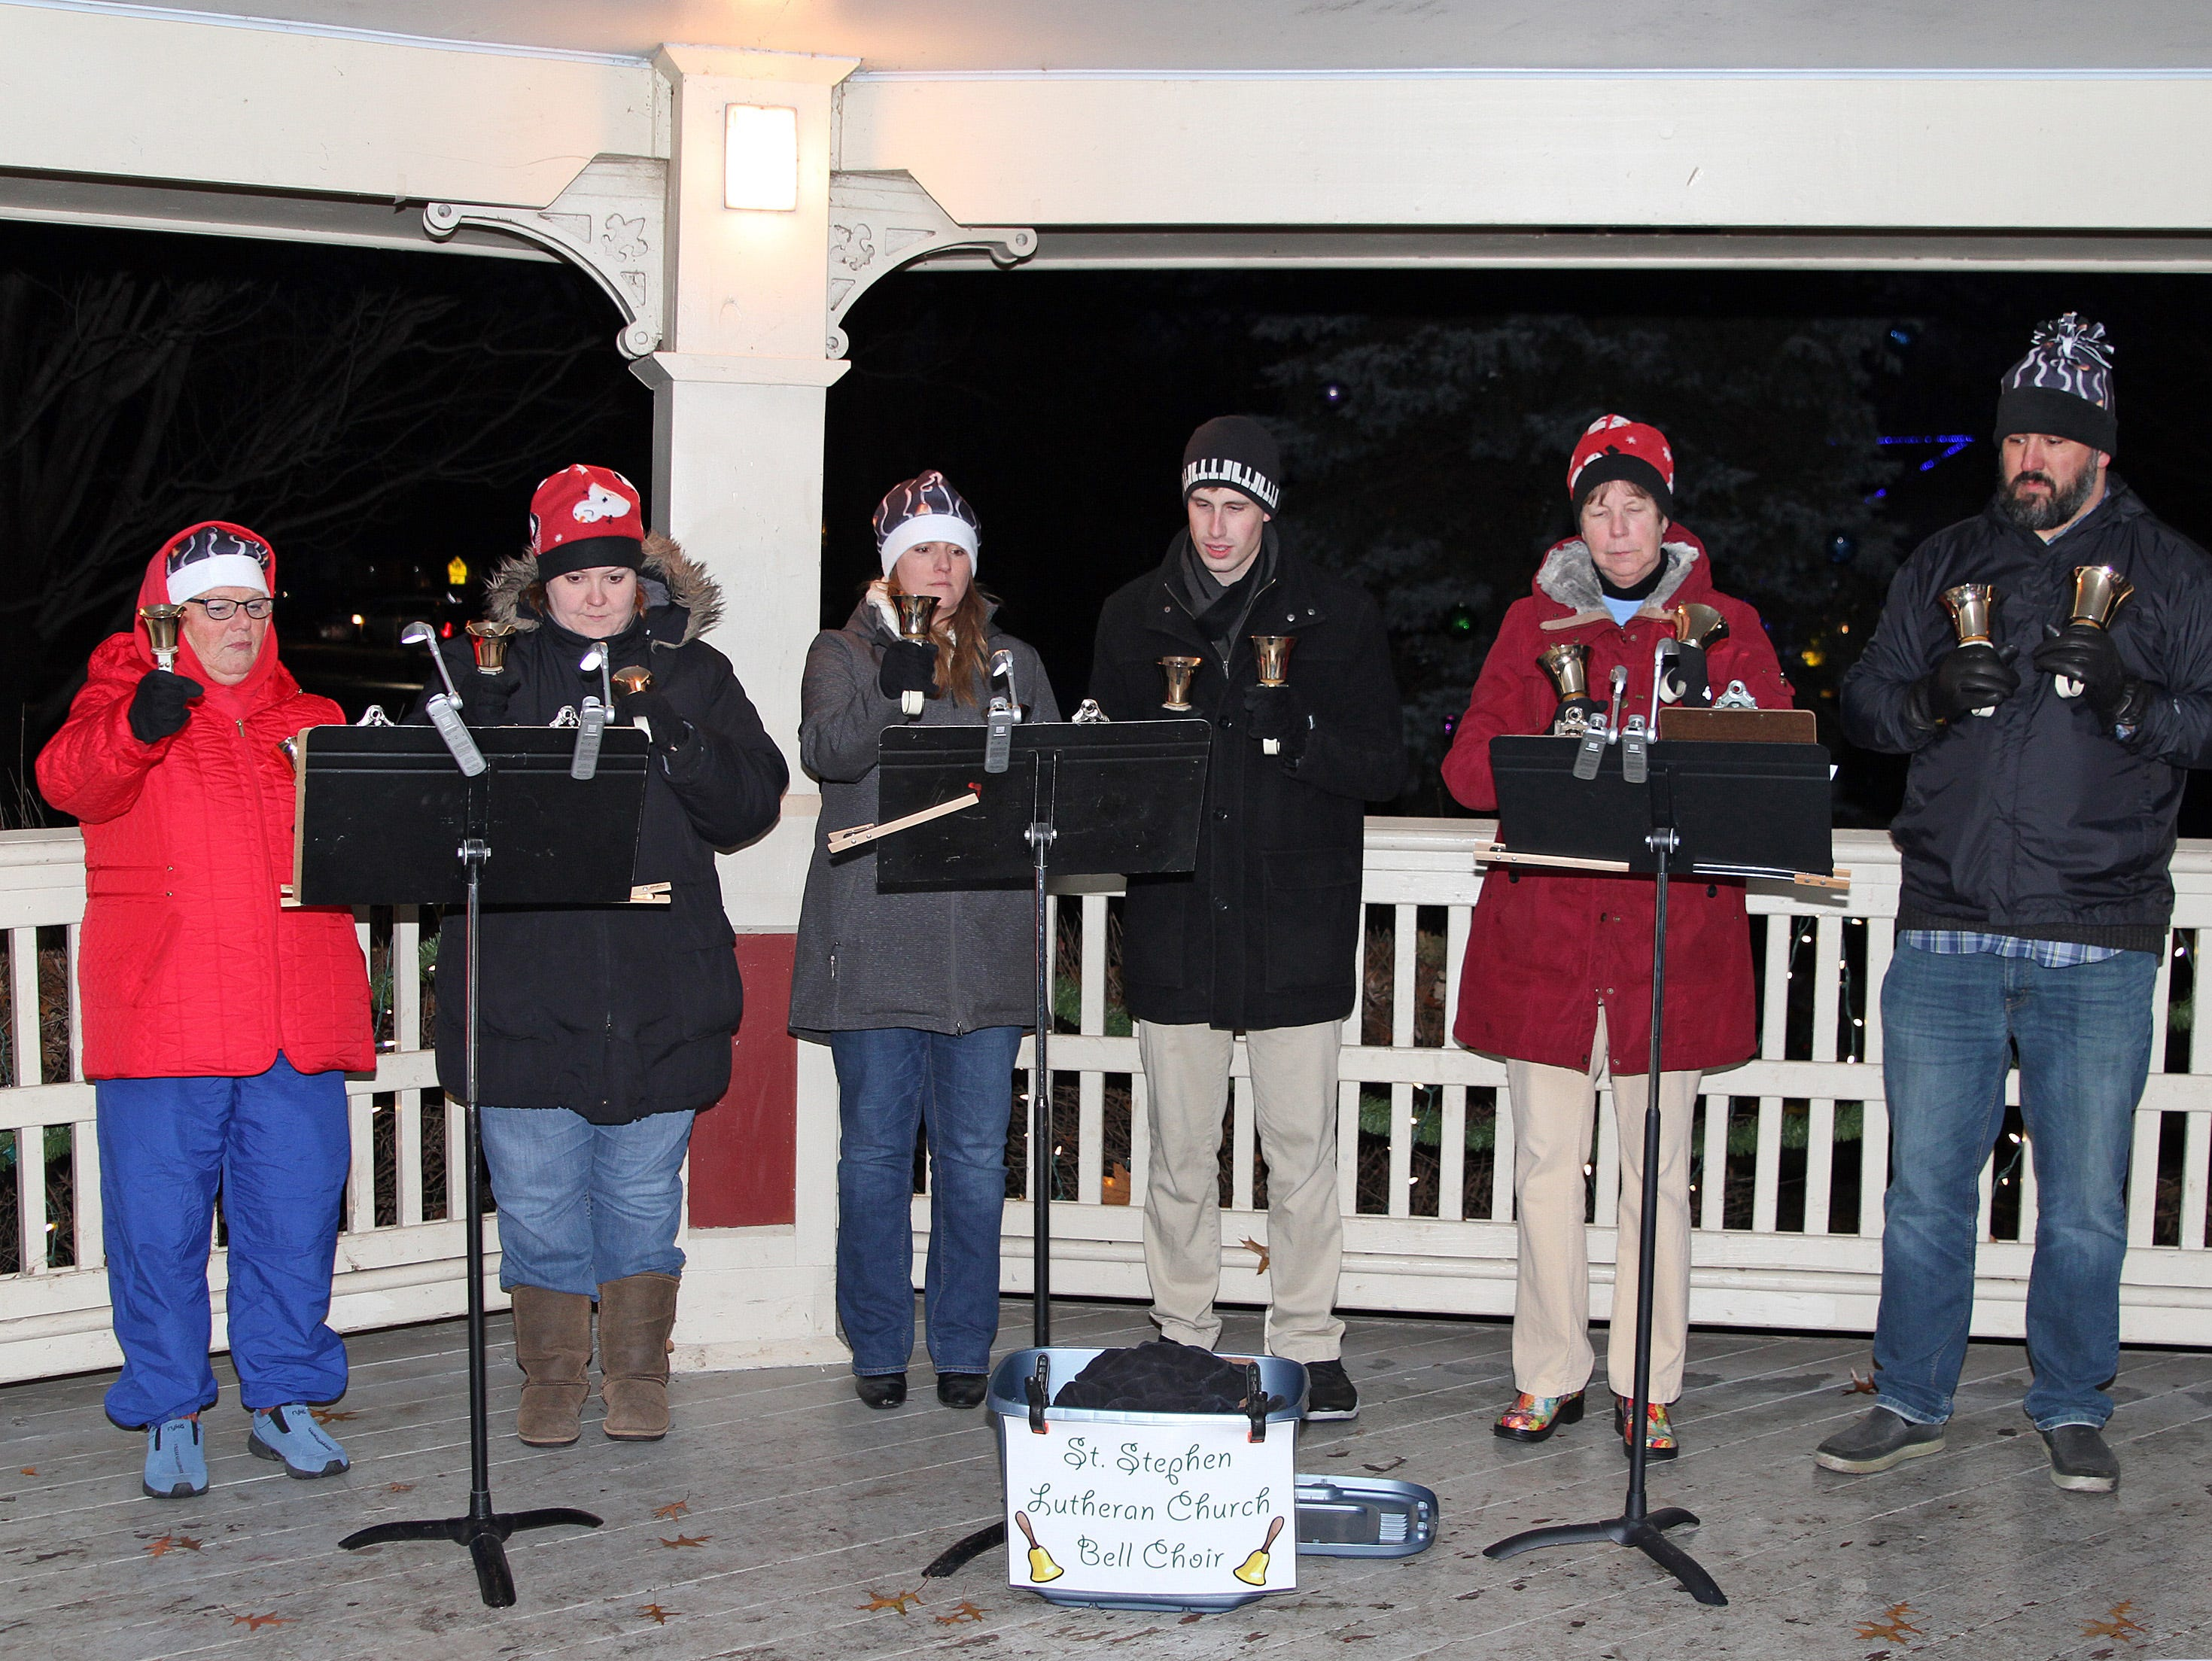 The St. Stephen Lutheran Church Bell Choir plays holiday favorites in the bandstand during UCAN's  third annual Light Up Urbandale on Sunday, Dec. 2, 2018 at Lions Park in Urbandale. Holiday festivities included a visit from Santa, crafts, goodies, official tree lighting ceremony, live reindeer and entertainment.